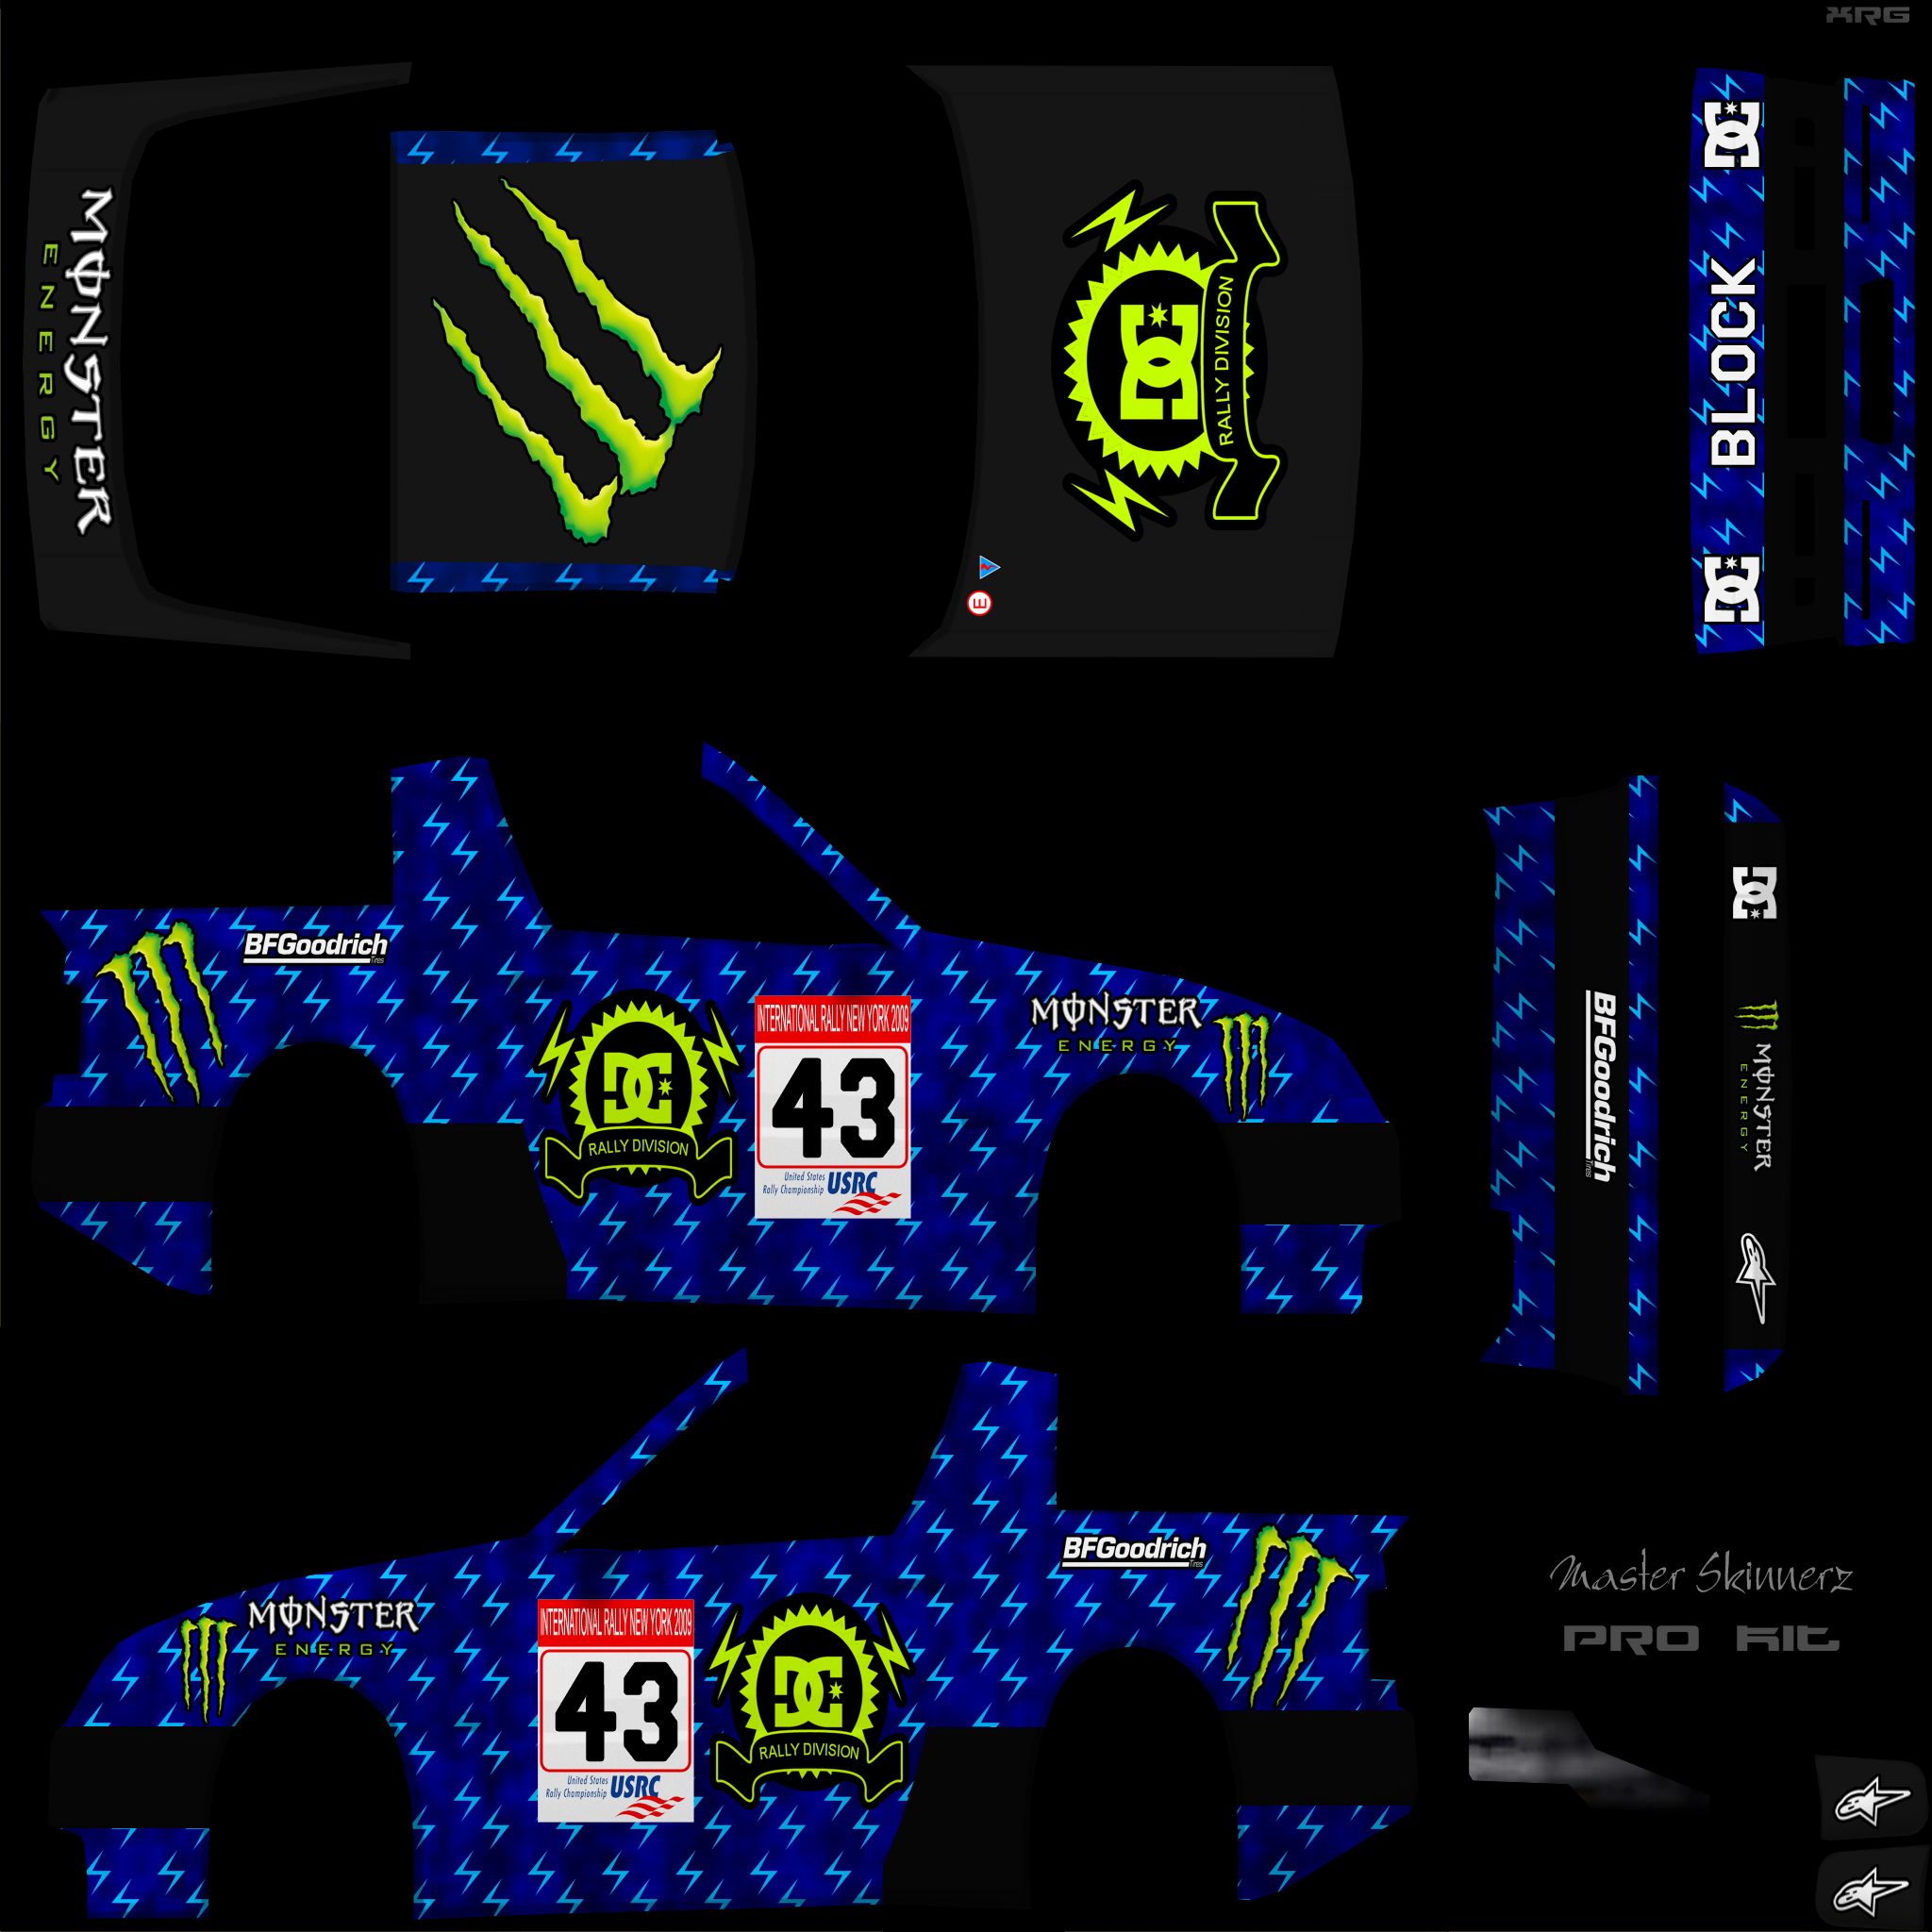 Xr Gt 171 Bean0 Com Car Skins For Live For Speed Assetto